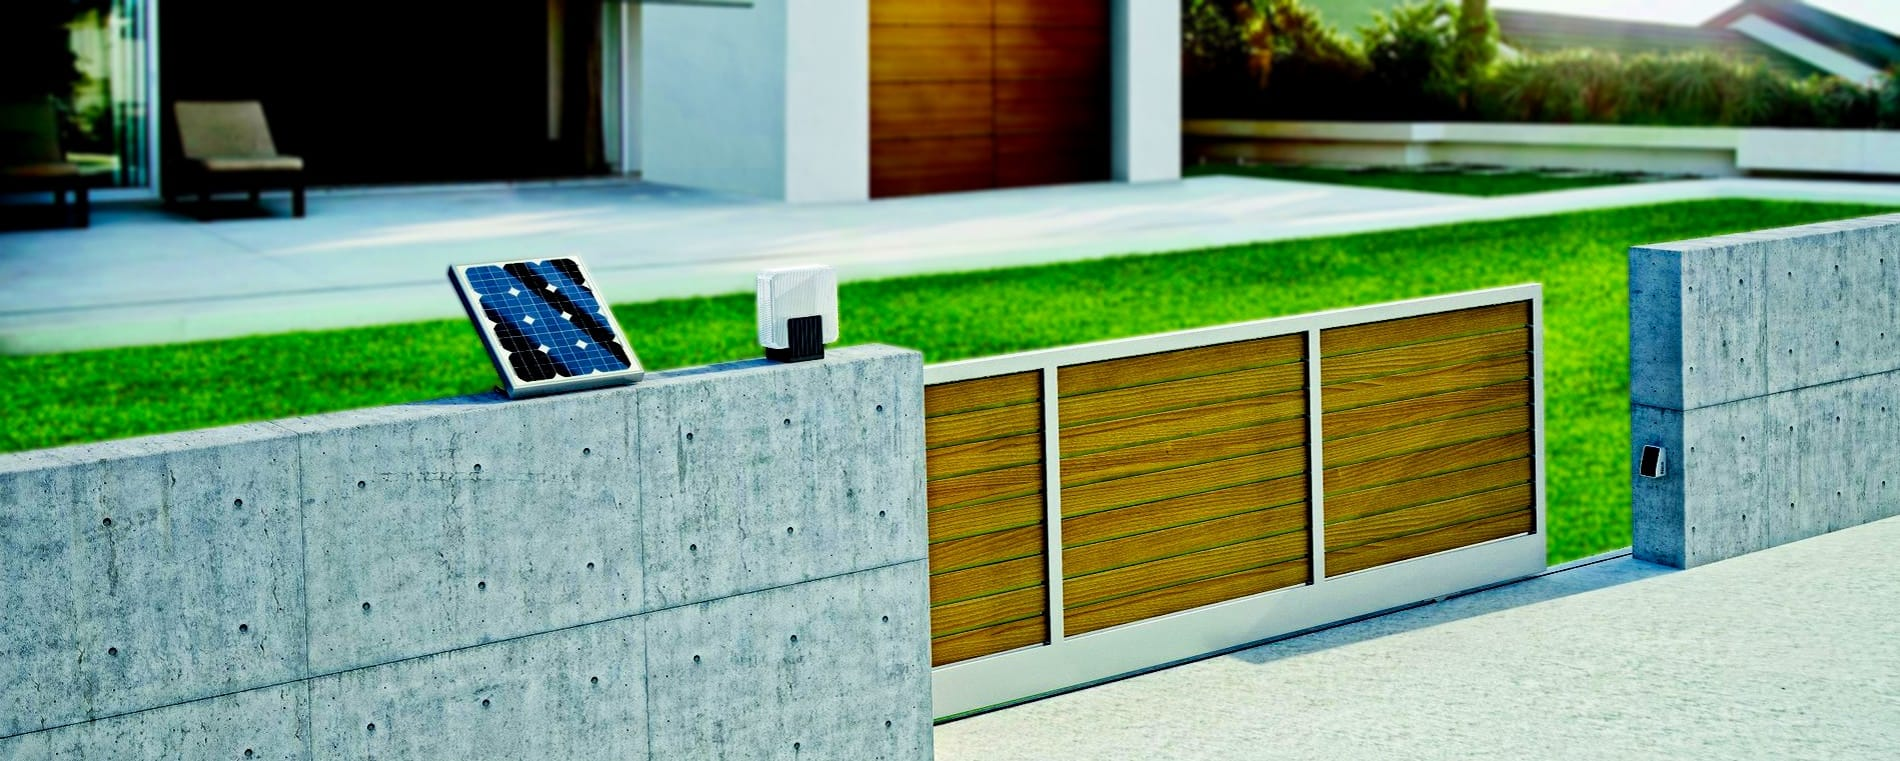 Automatic Gates Brisbane Logan, Ipswich, Redlands and Bayside